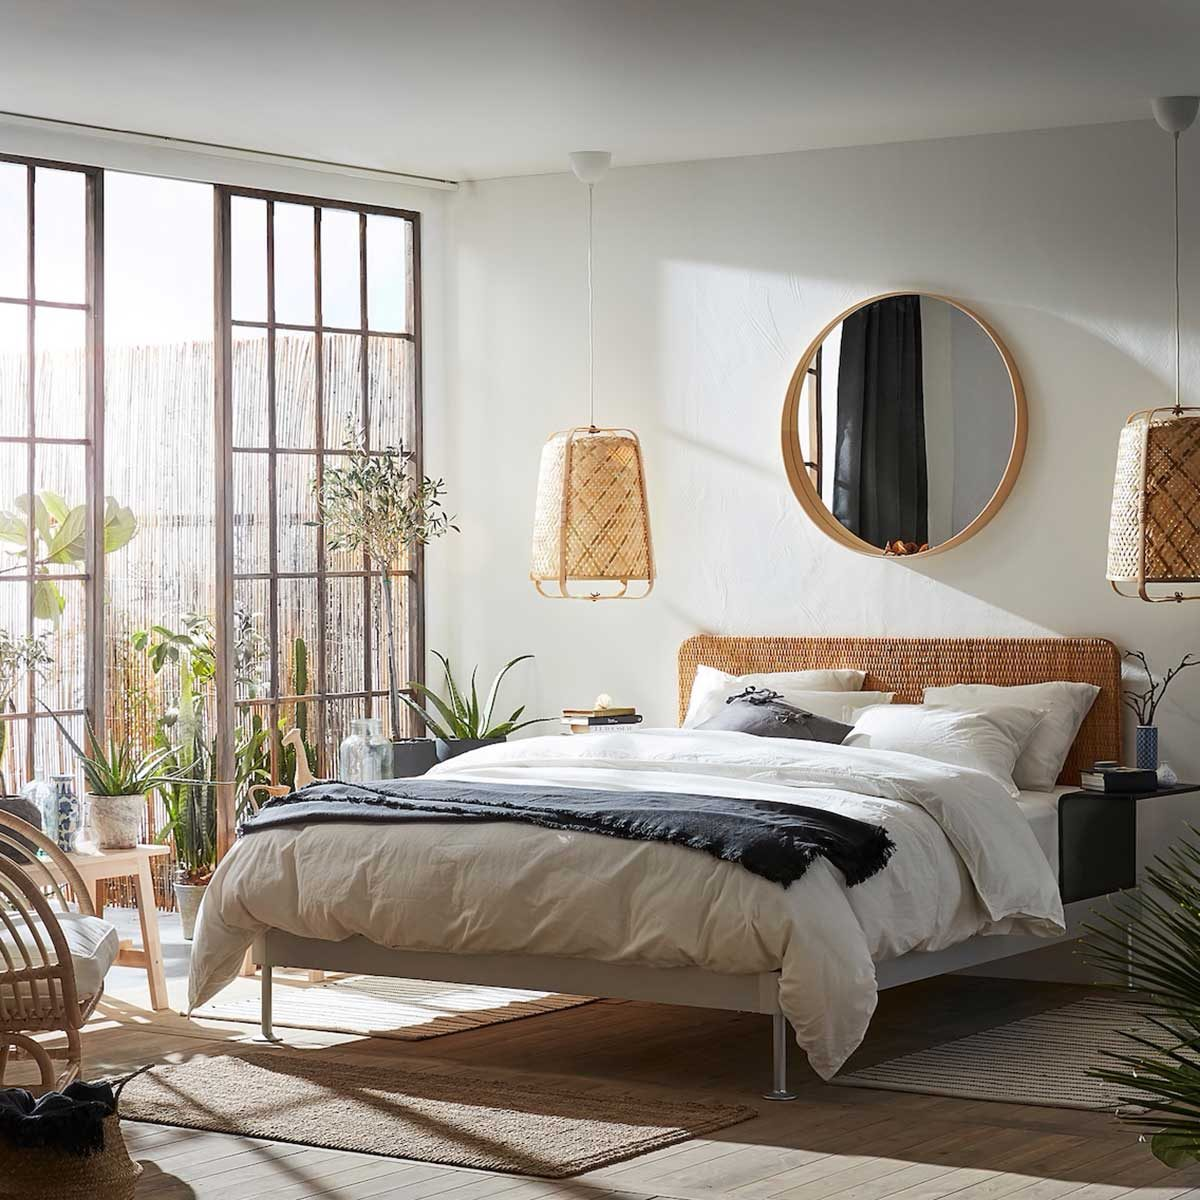 Bedroom with cool-toned gray accents